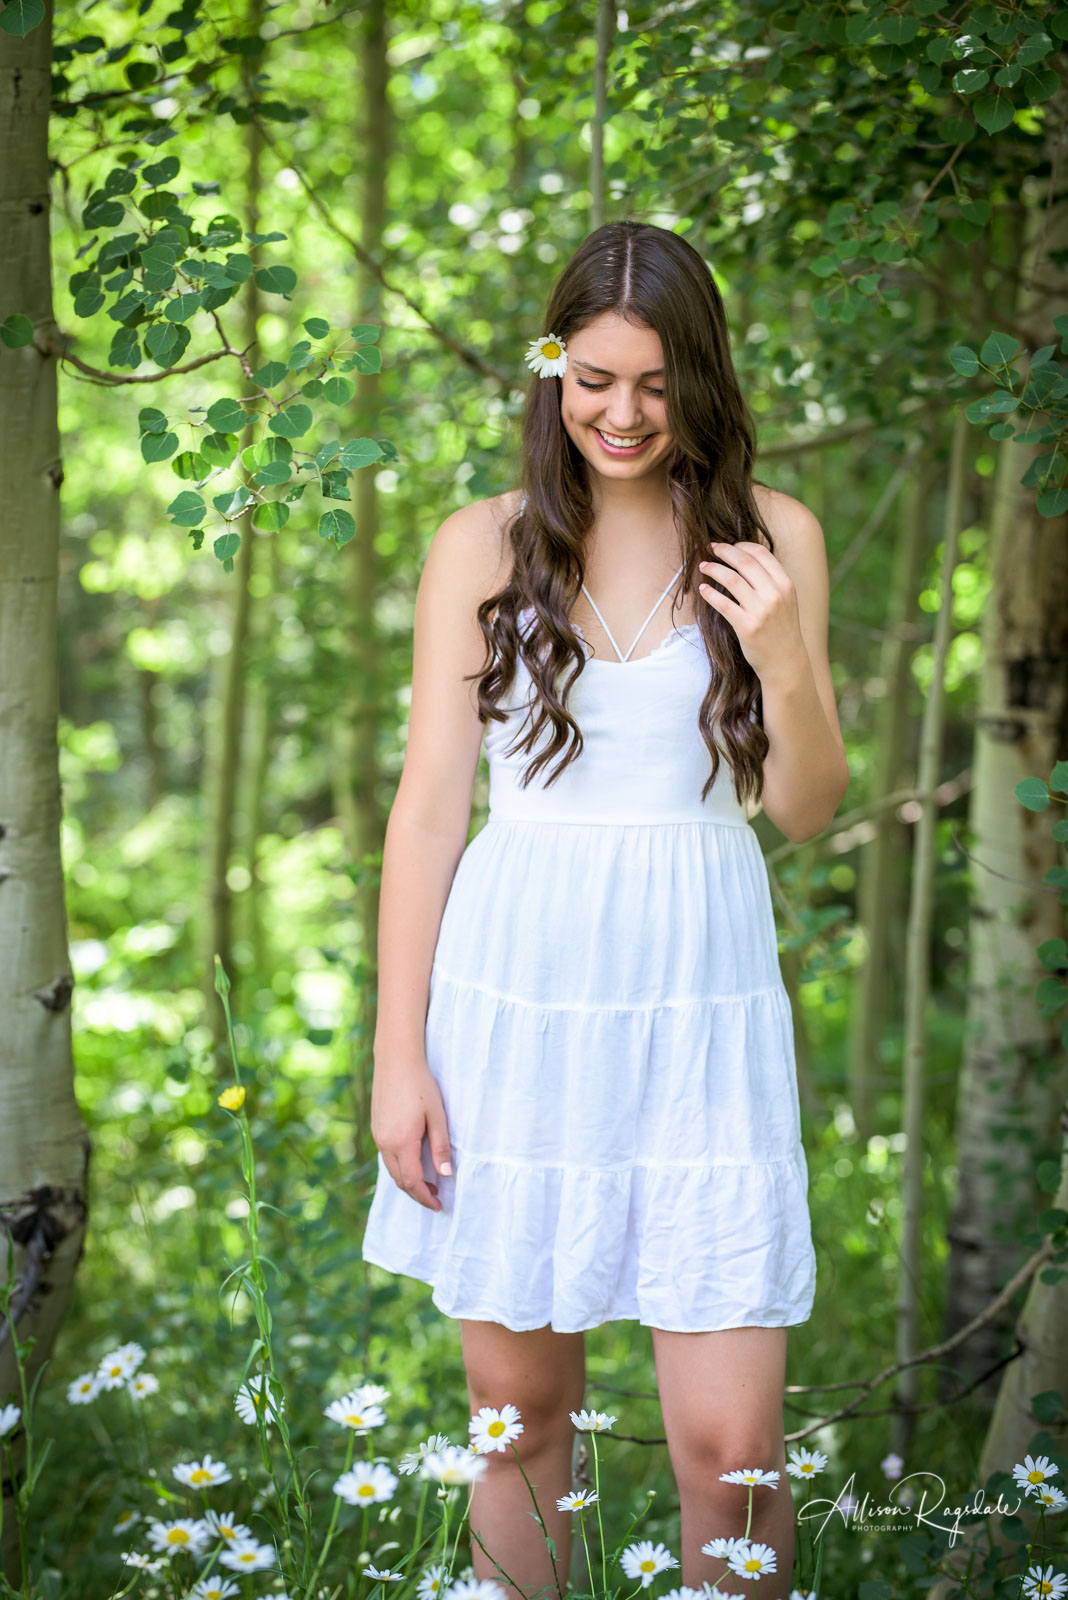 professional outdoor senior pictures in Colorado by Allison Ragsdale Photography